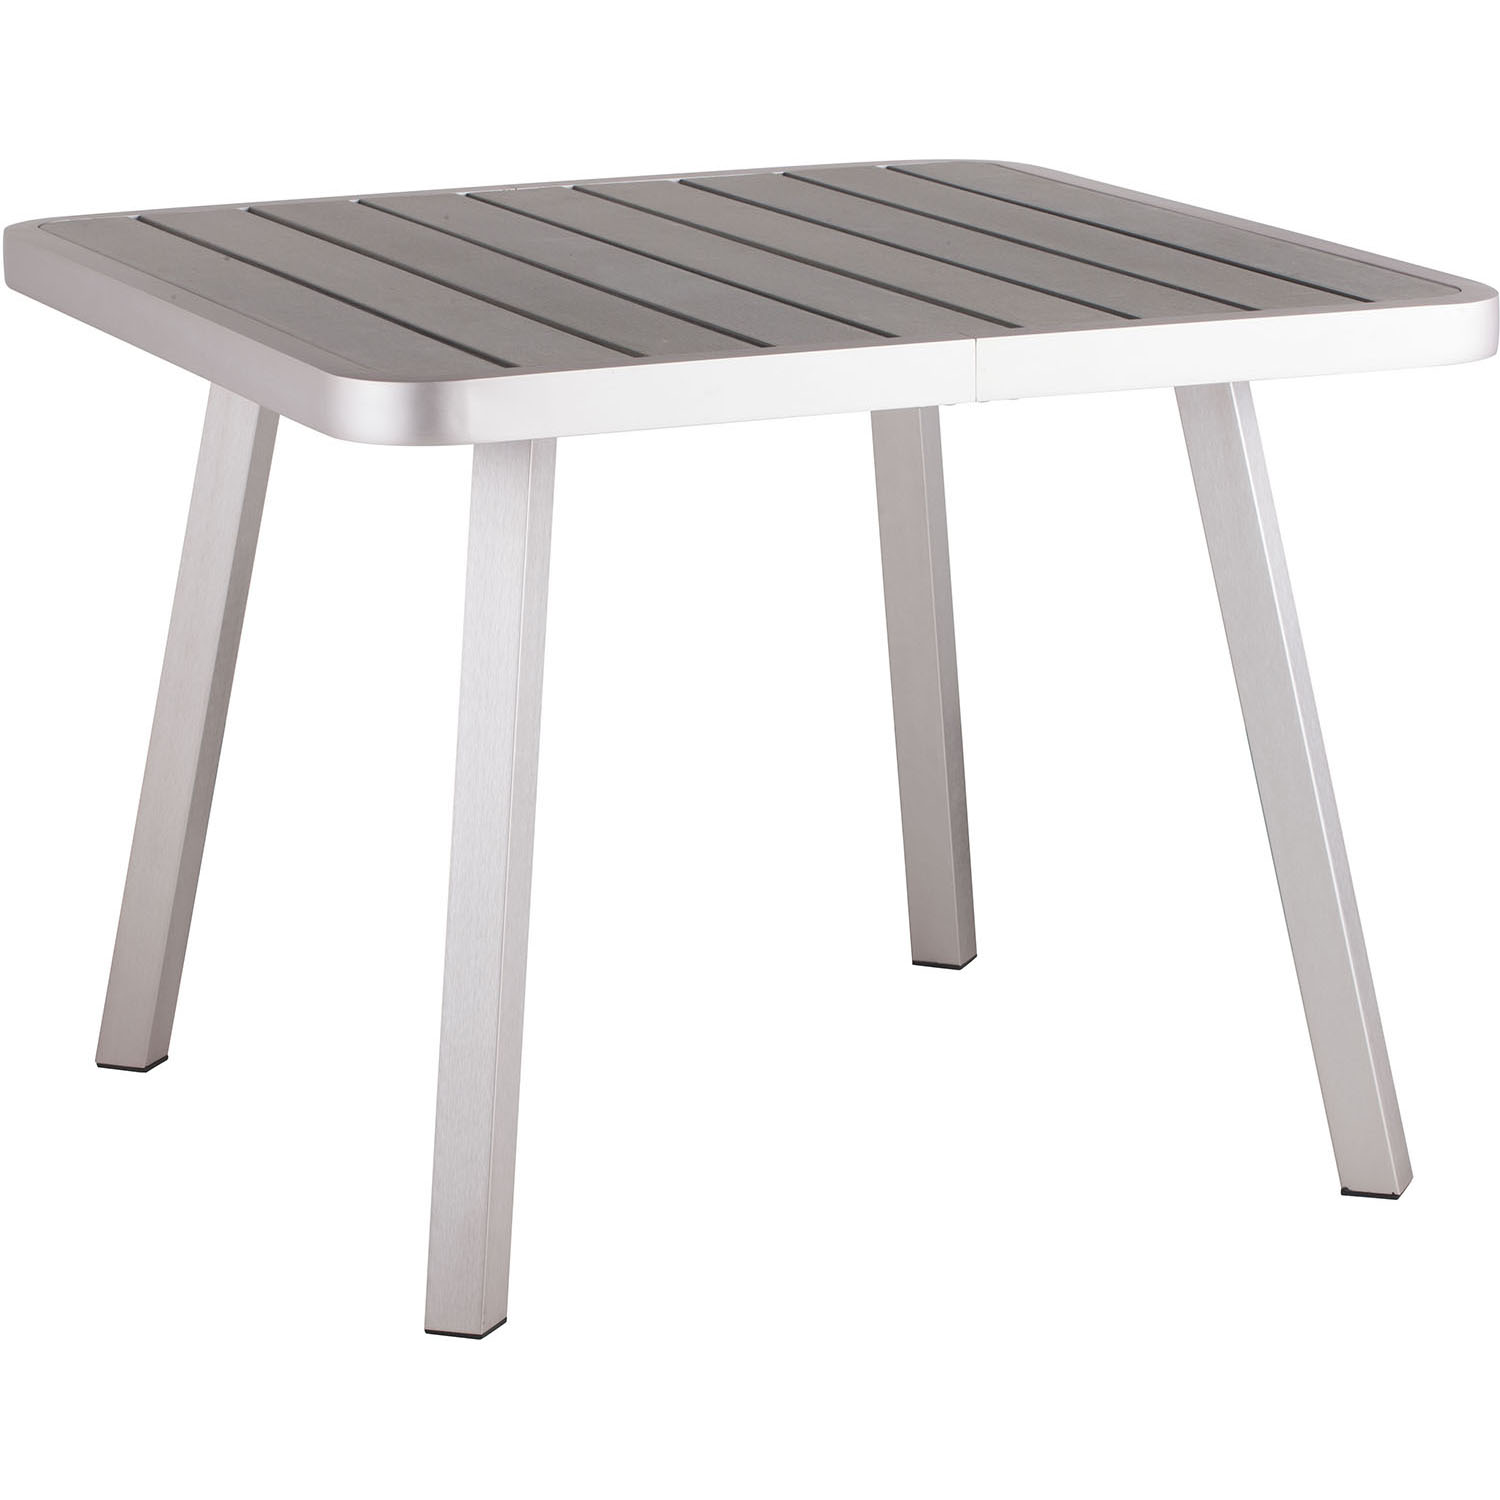 Lovable Outdoor Township Dining Square Table Brushed Aluminum Frame  Product Photo